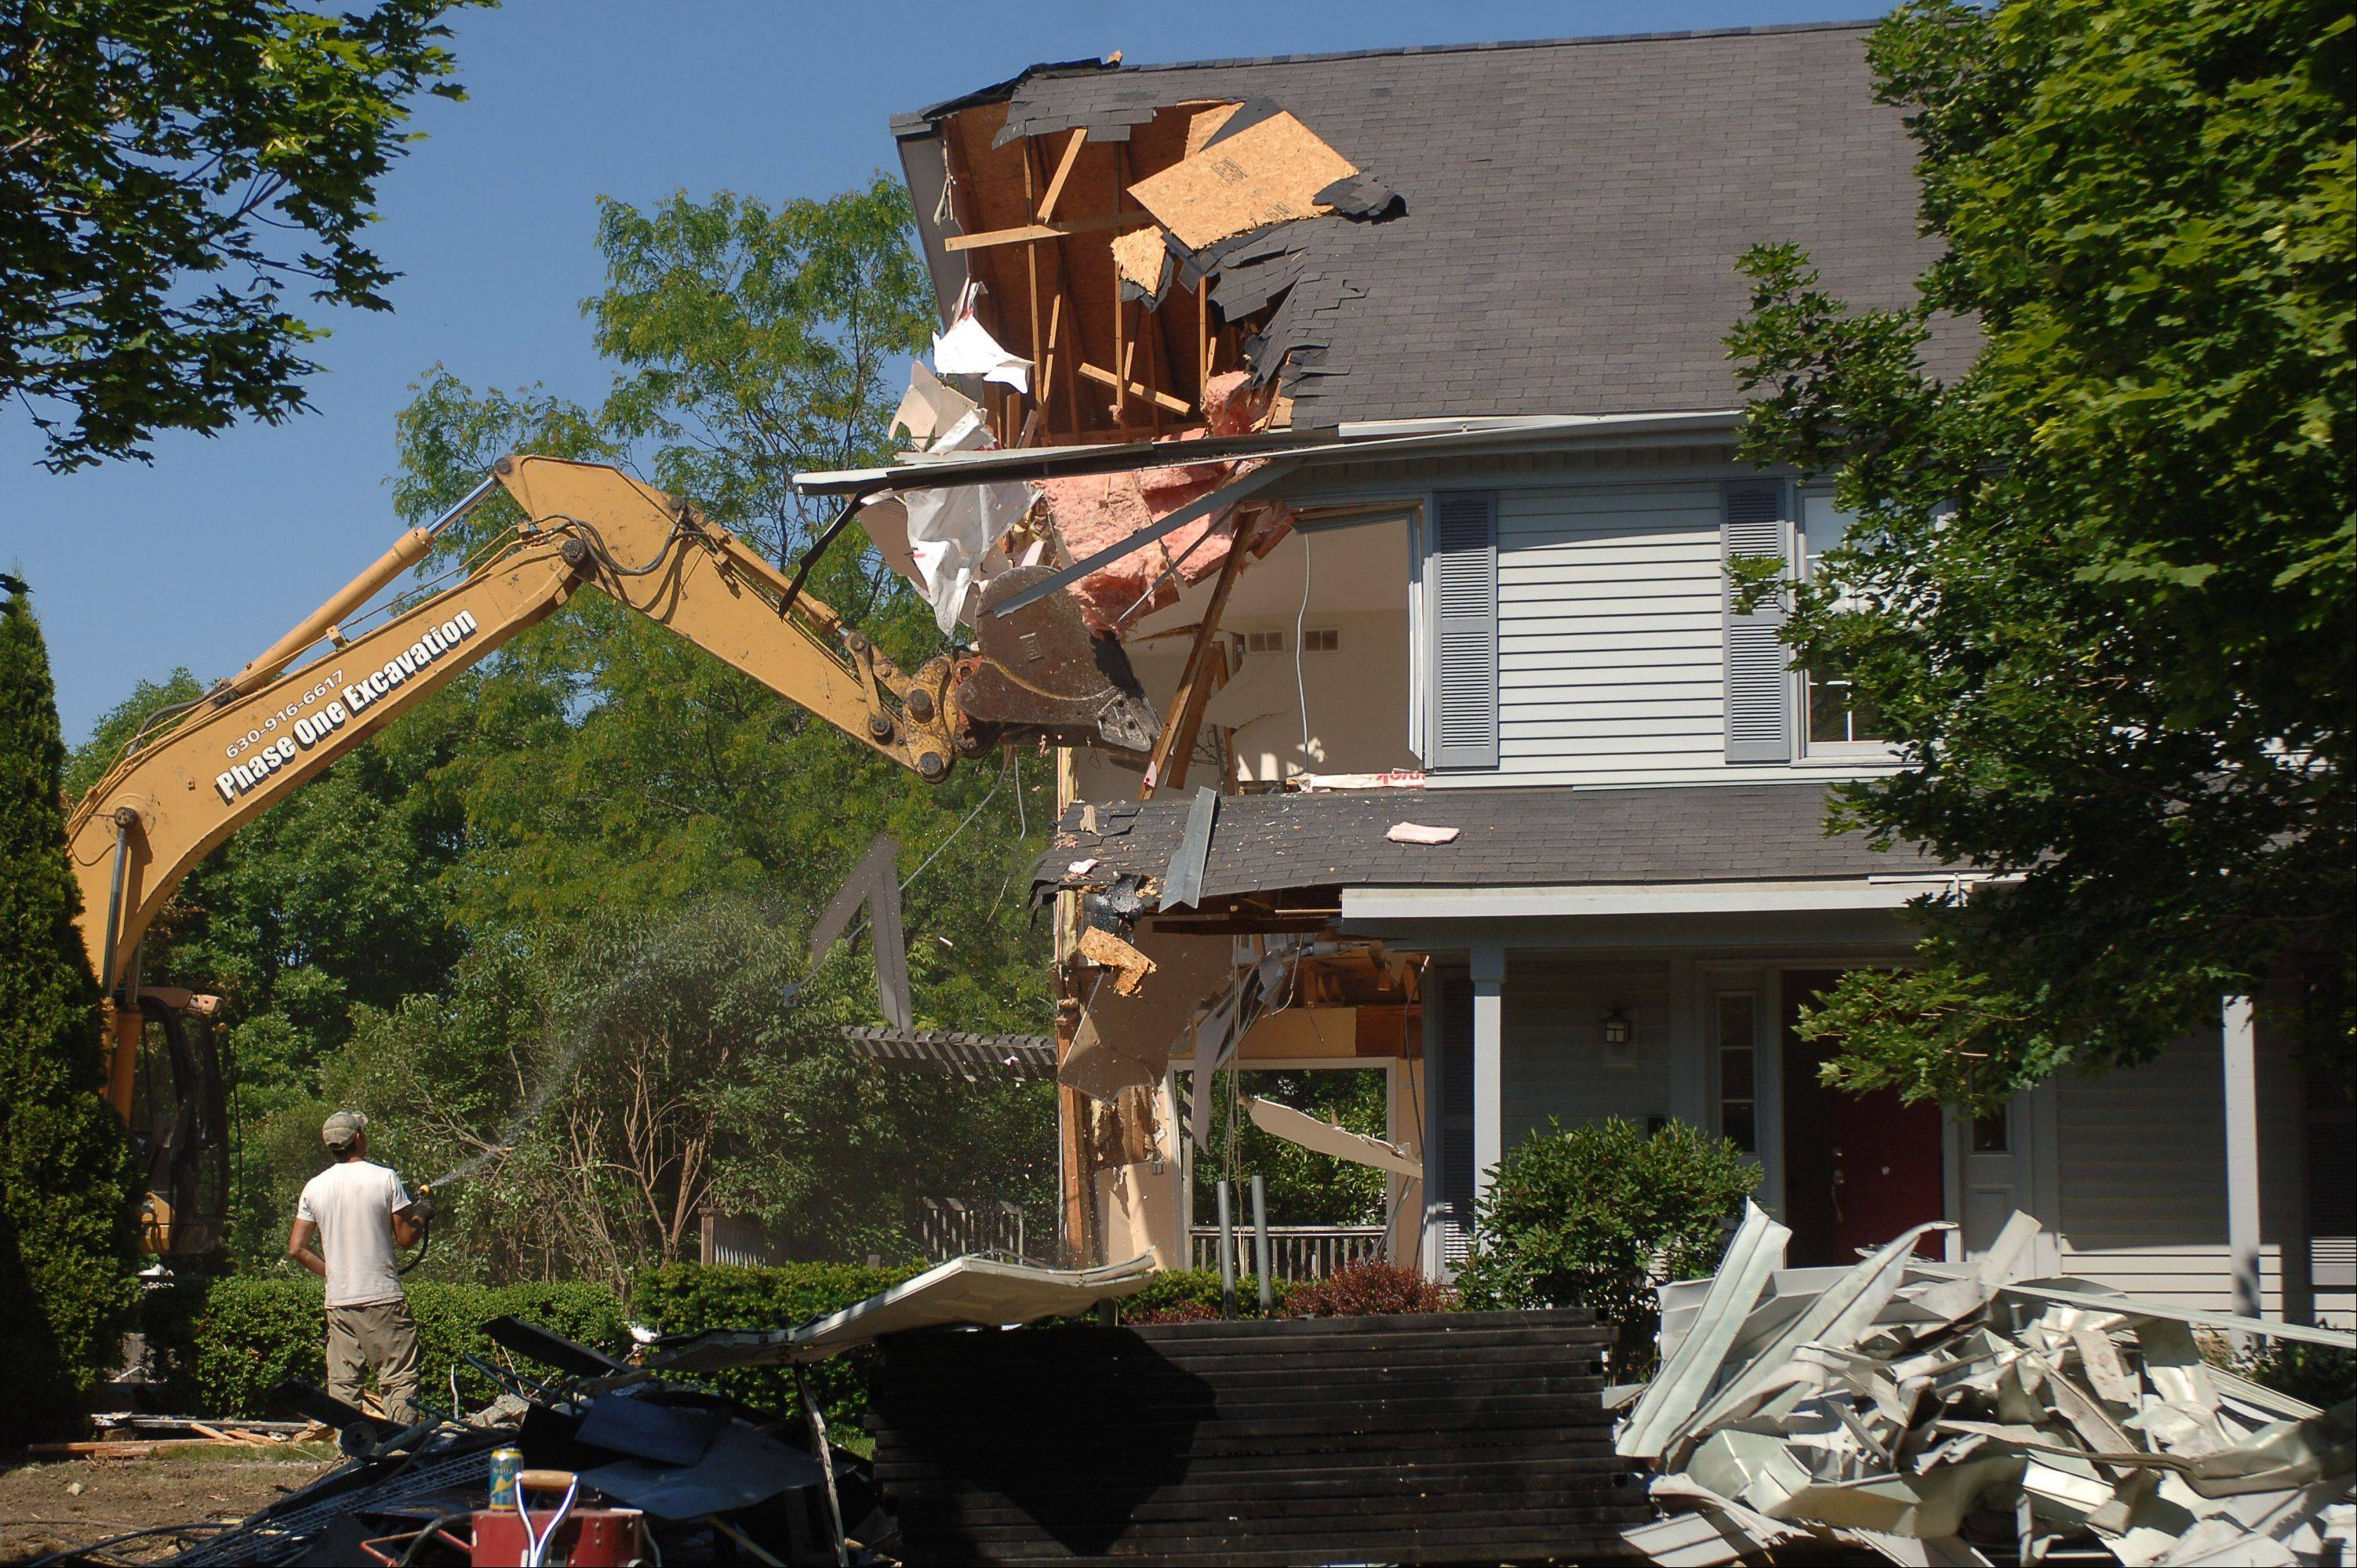 Ongoing court action ends with demolition of Vernon Hills home